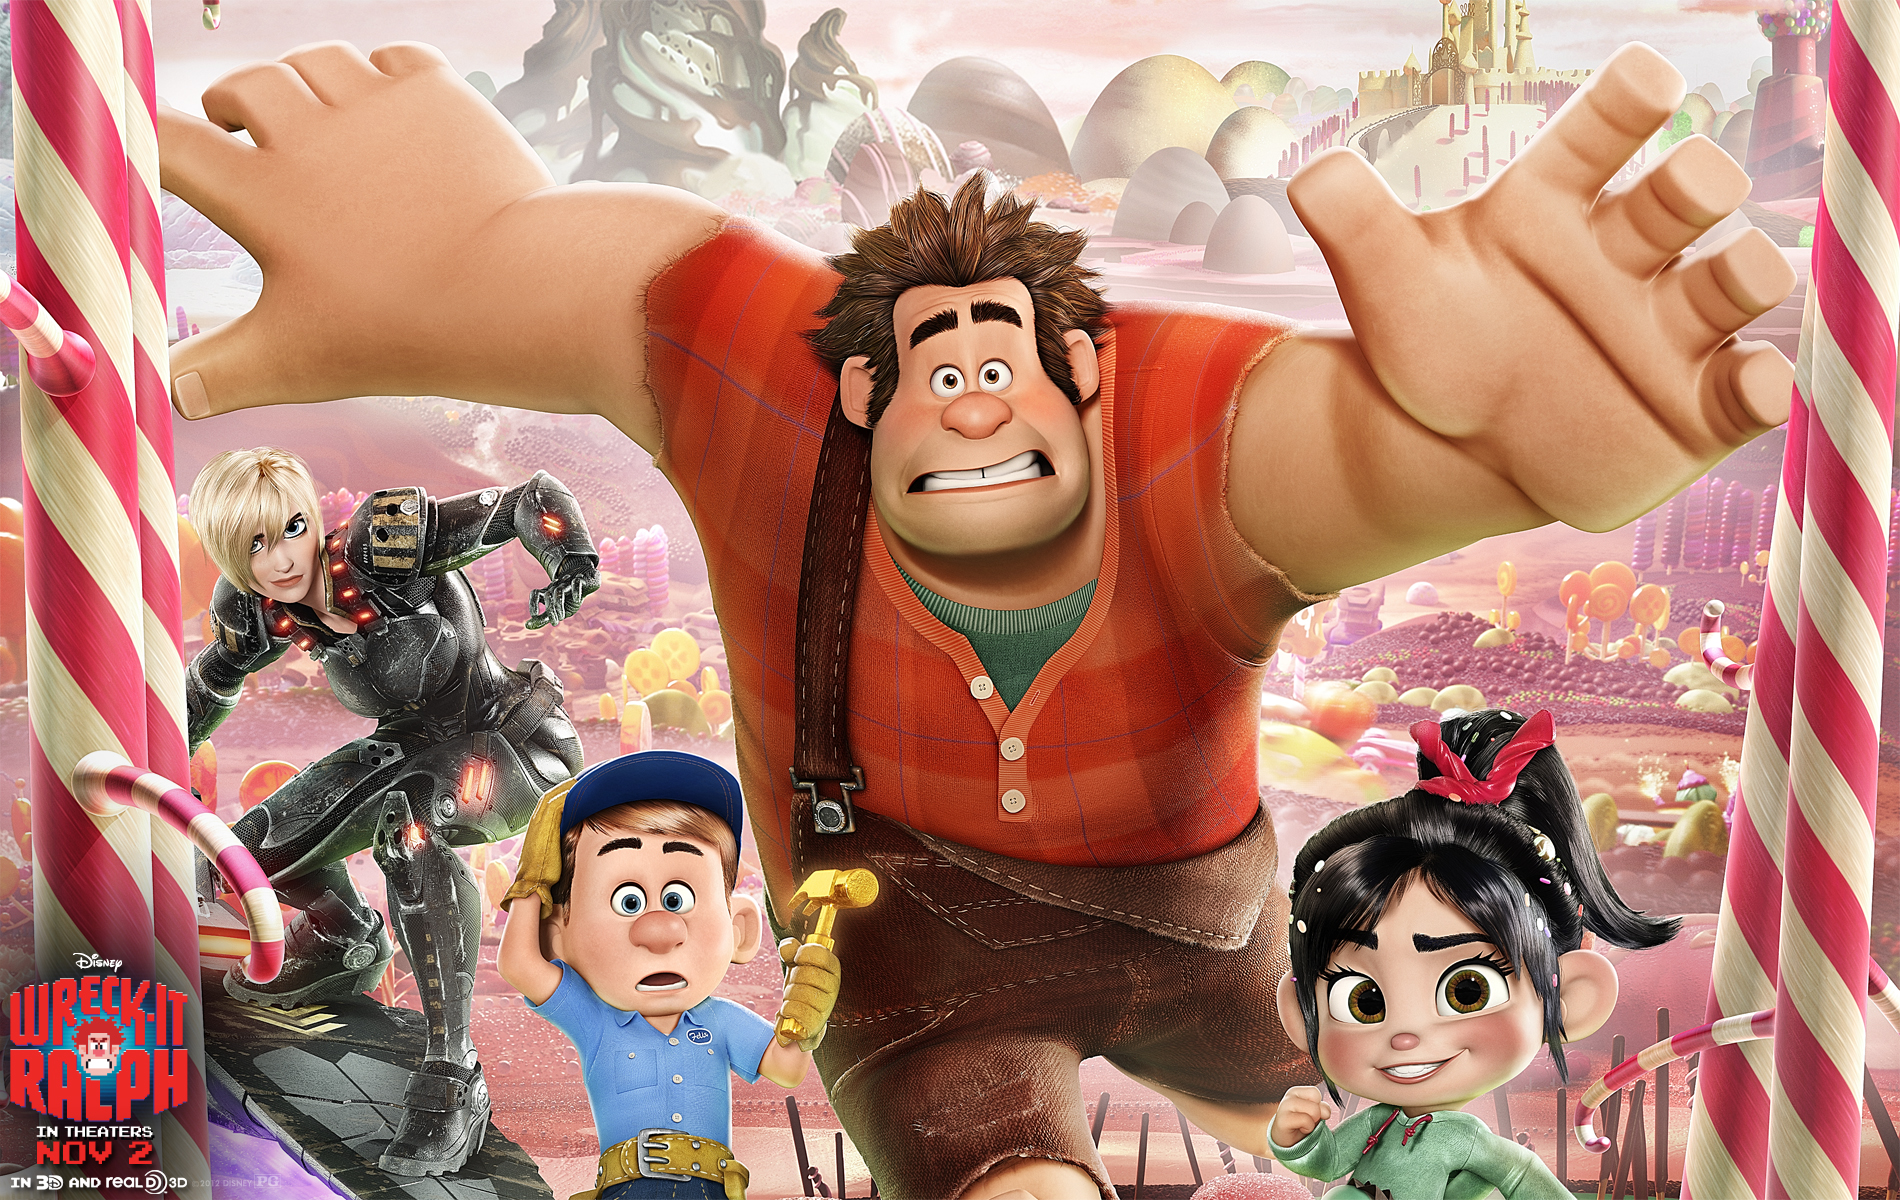 Wreck-It Ralph Wallpaper and Background Image | 1900x1200 | ID:321936 - Wallpaper Abyss